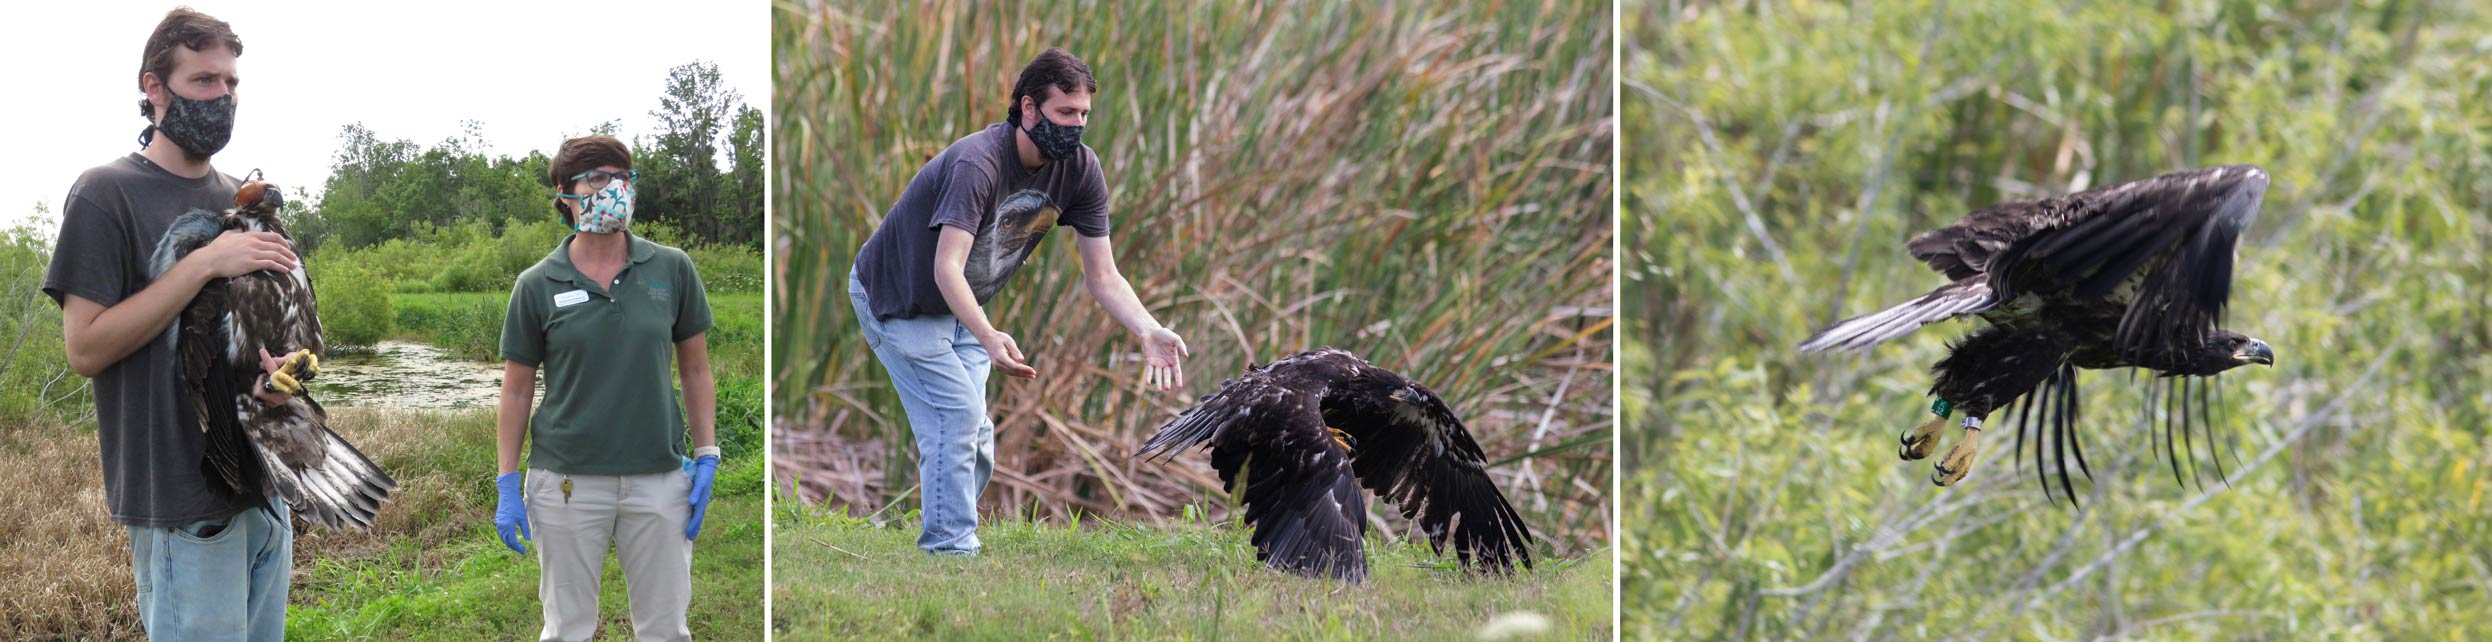 Two district employees release a fledgling eagle